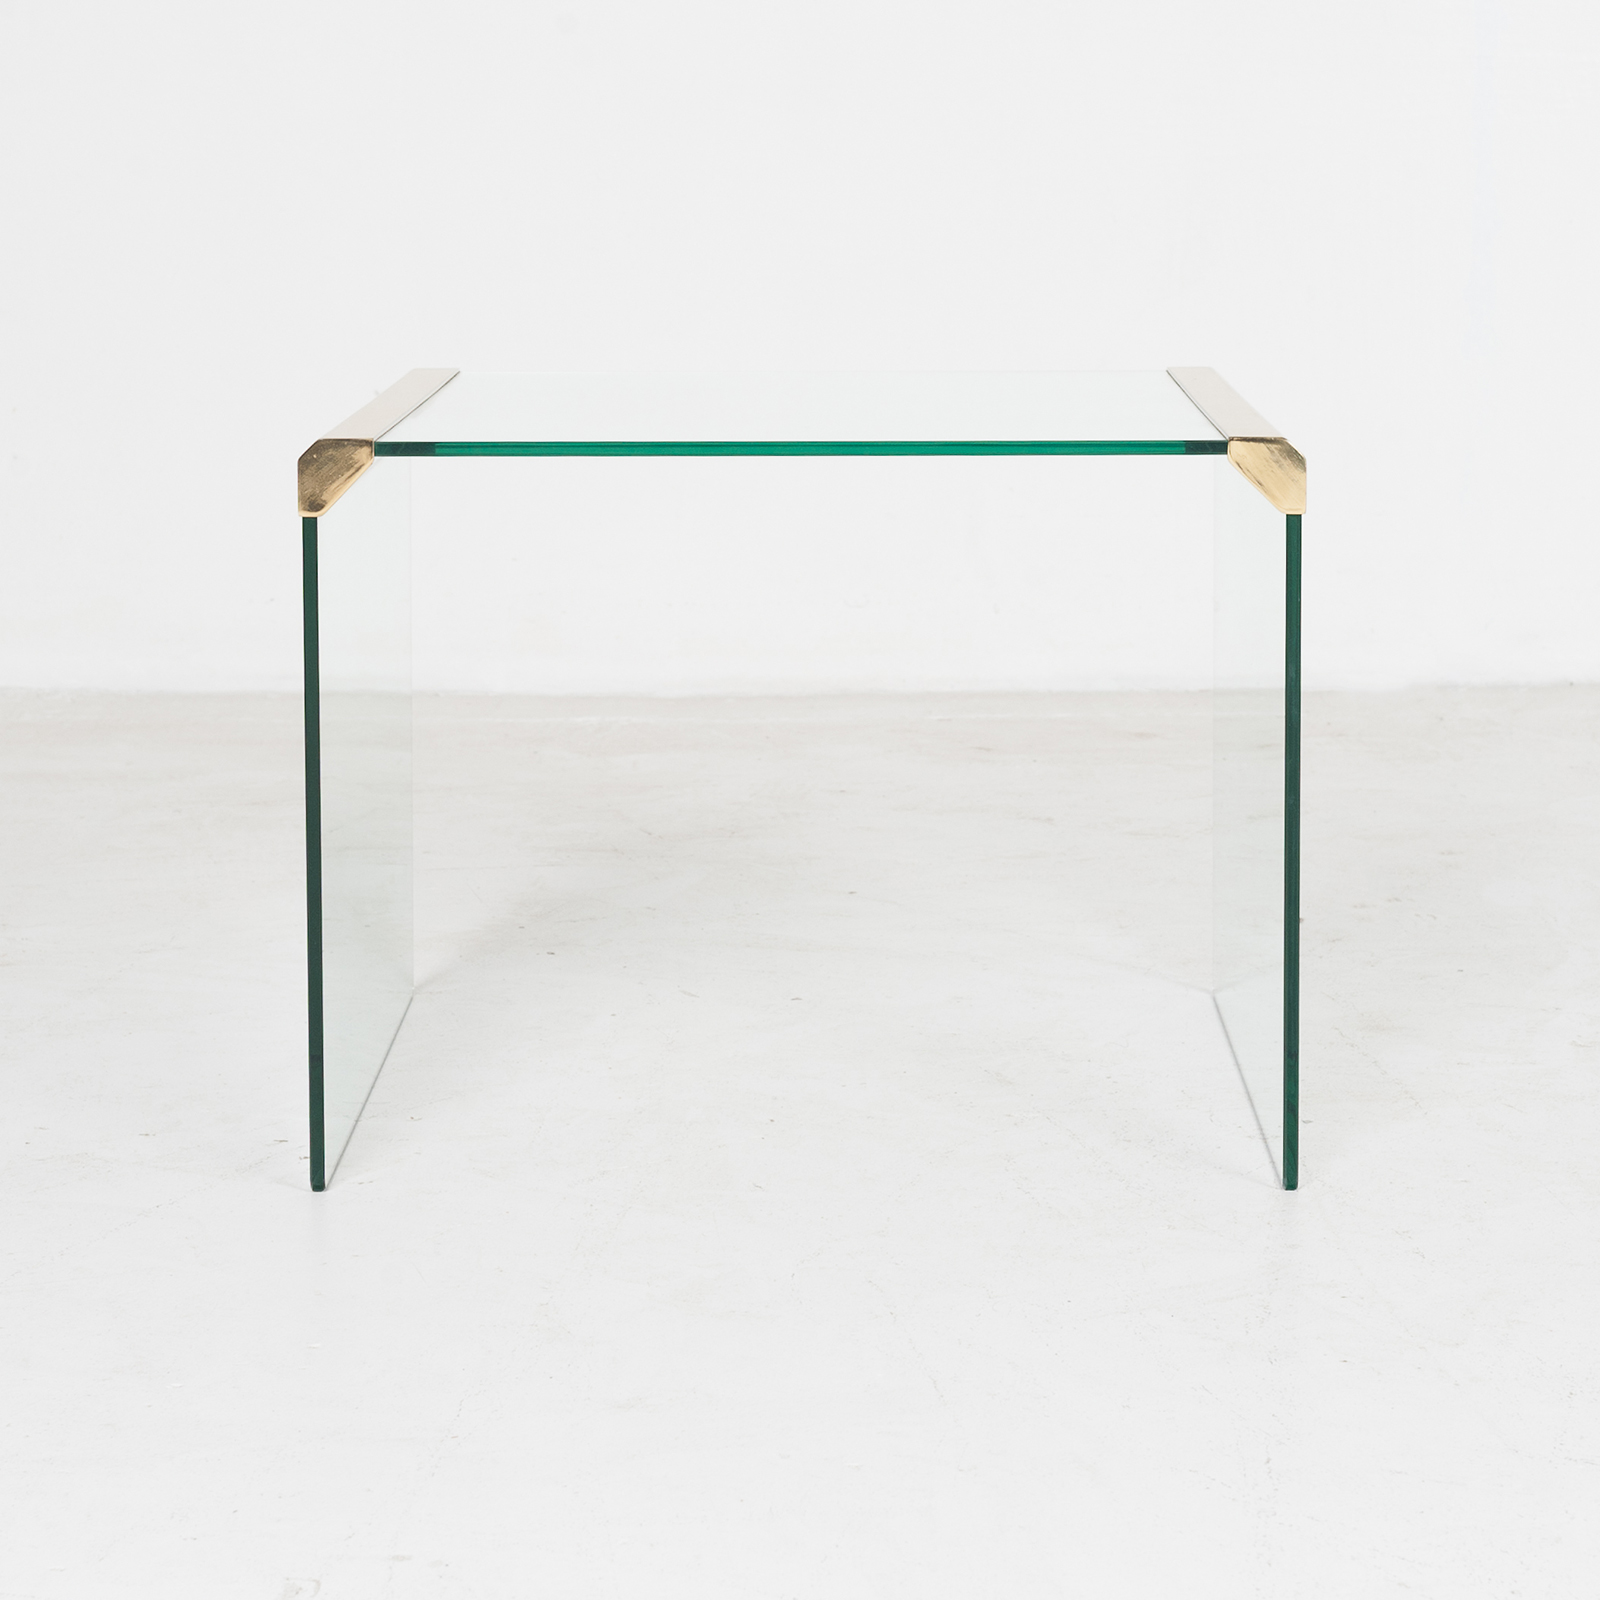 Waterfall Side Table By Pace In Glass And Anodised Brass, 1970s, United States898